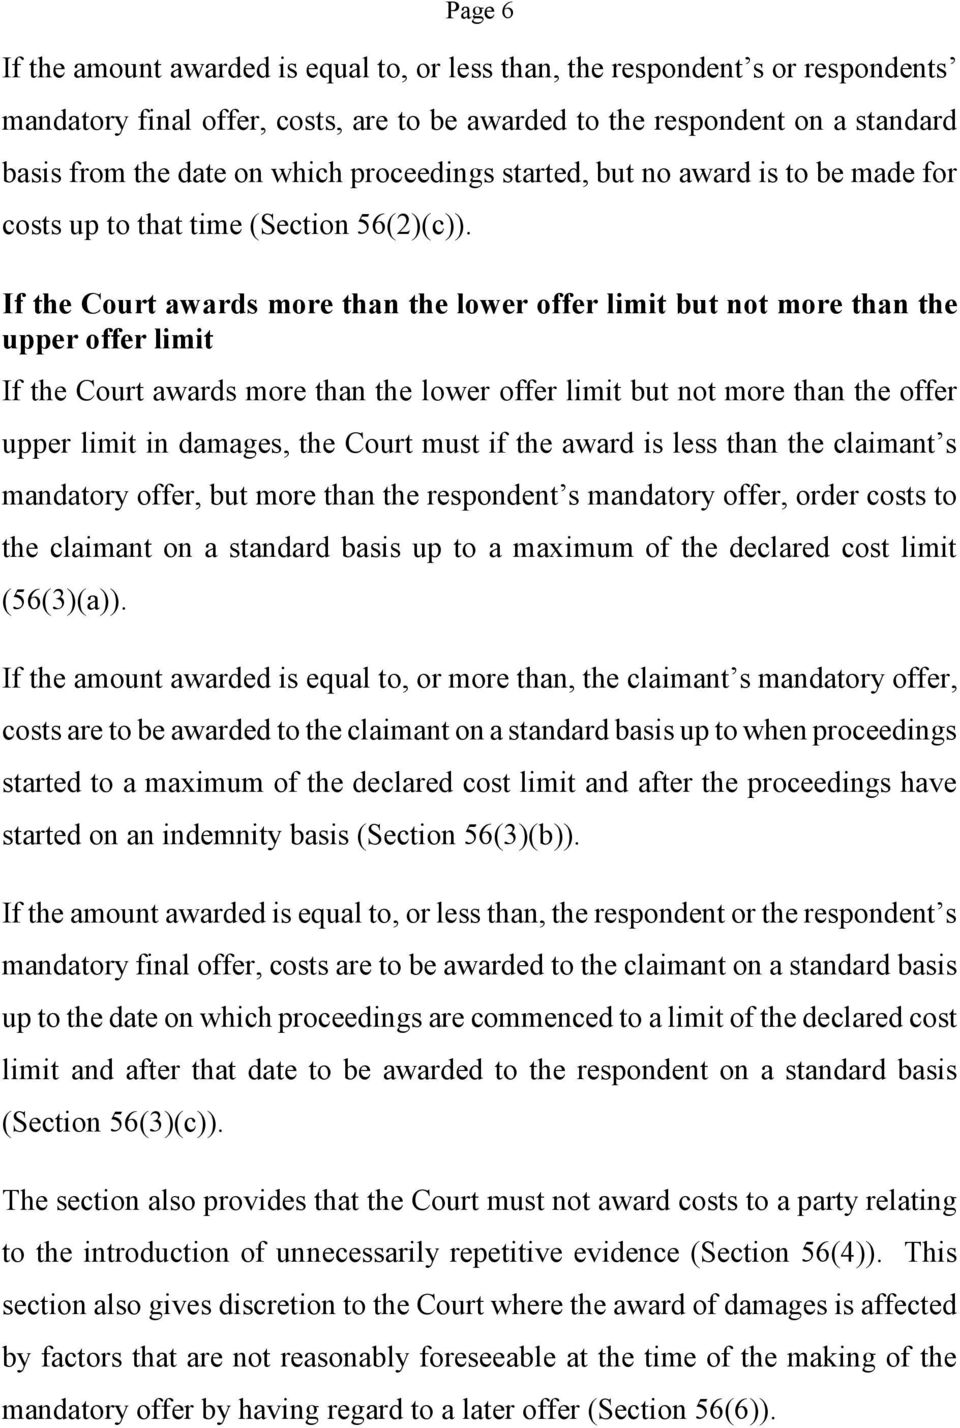 If the Court awards more than the lower offer limit but not more than the upper offer limit If the Court awards more than the lower offer limit but not more than the offer upper limit in damages, the